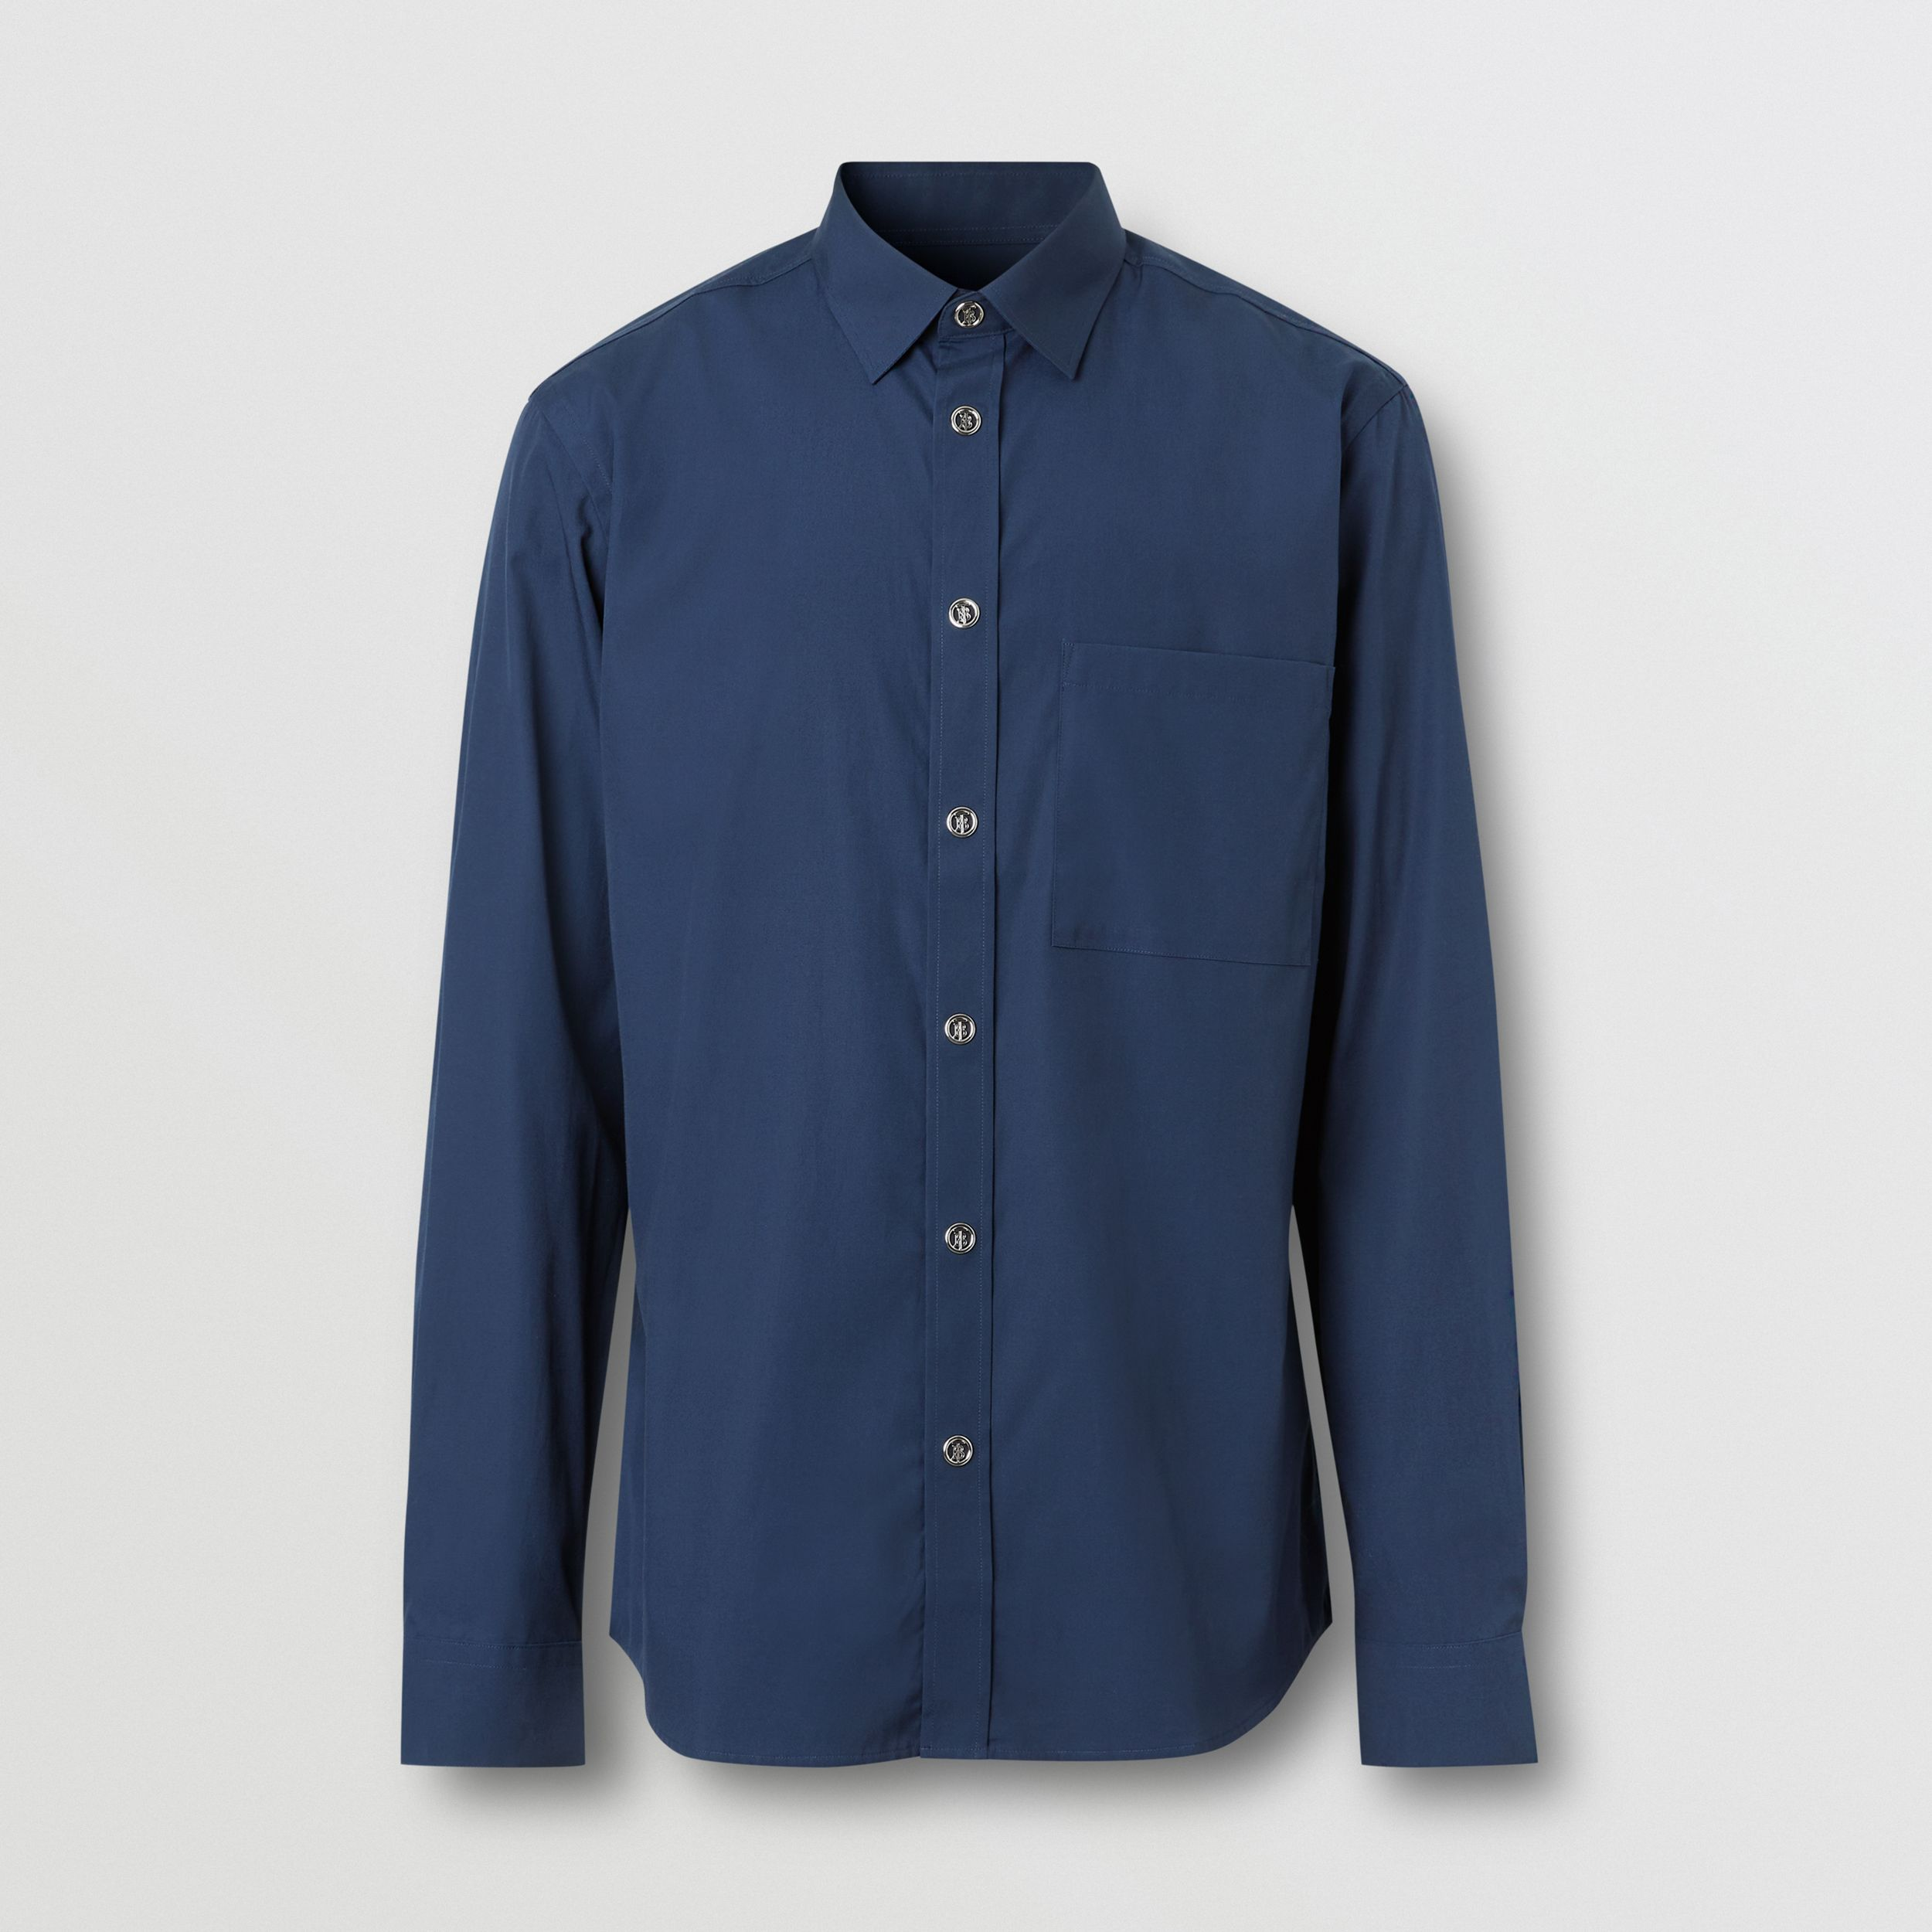 Monogram Motif Stretch Cotton Shirt in Navy - Men | Burberry - 4